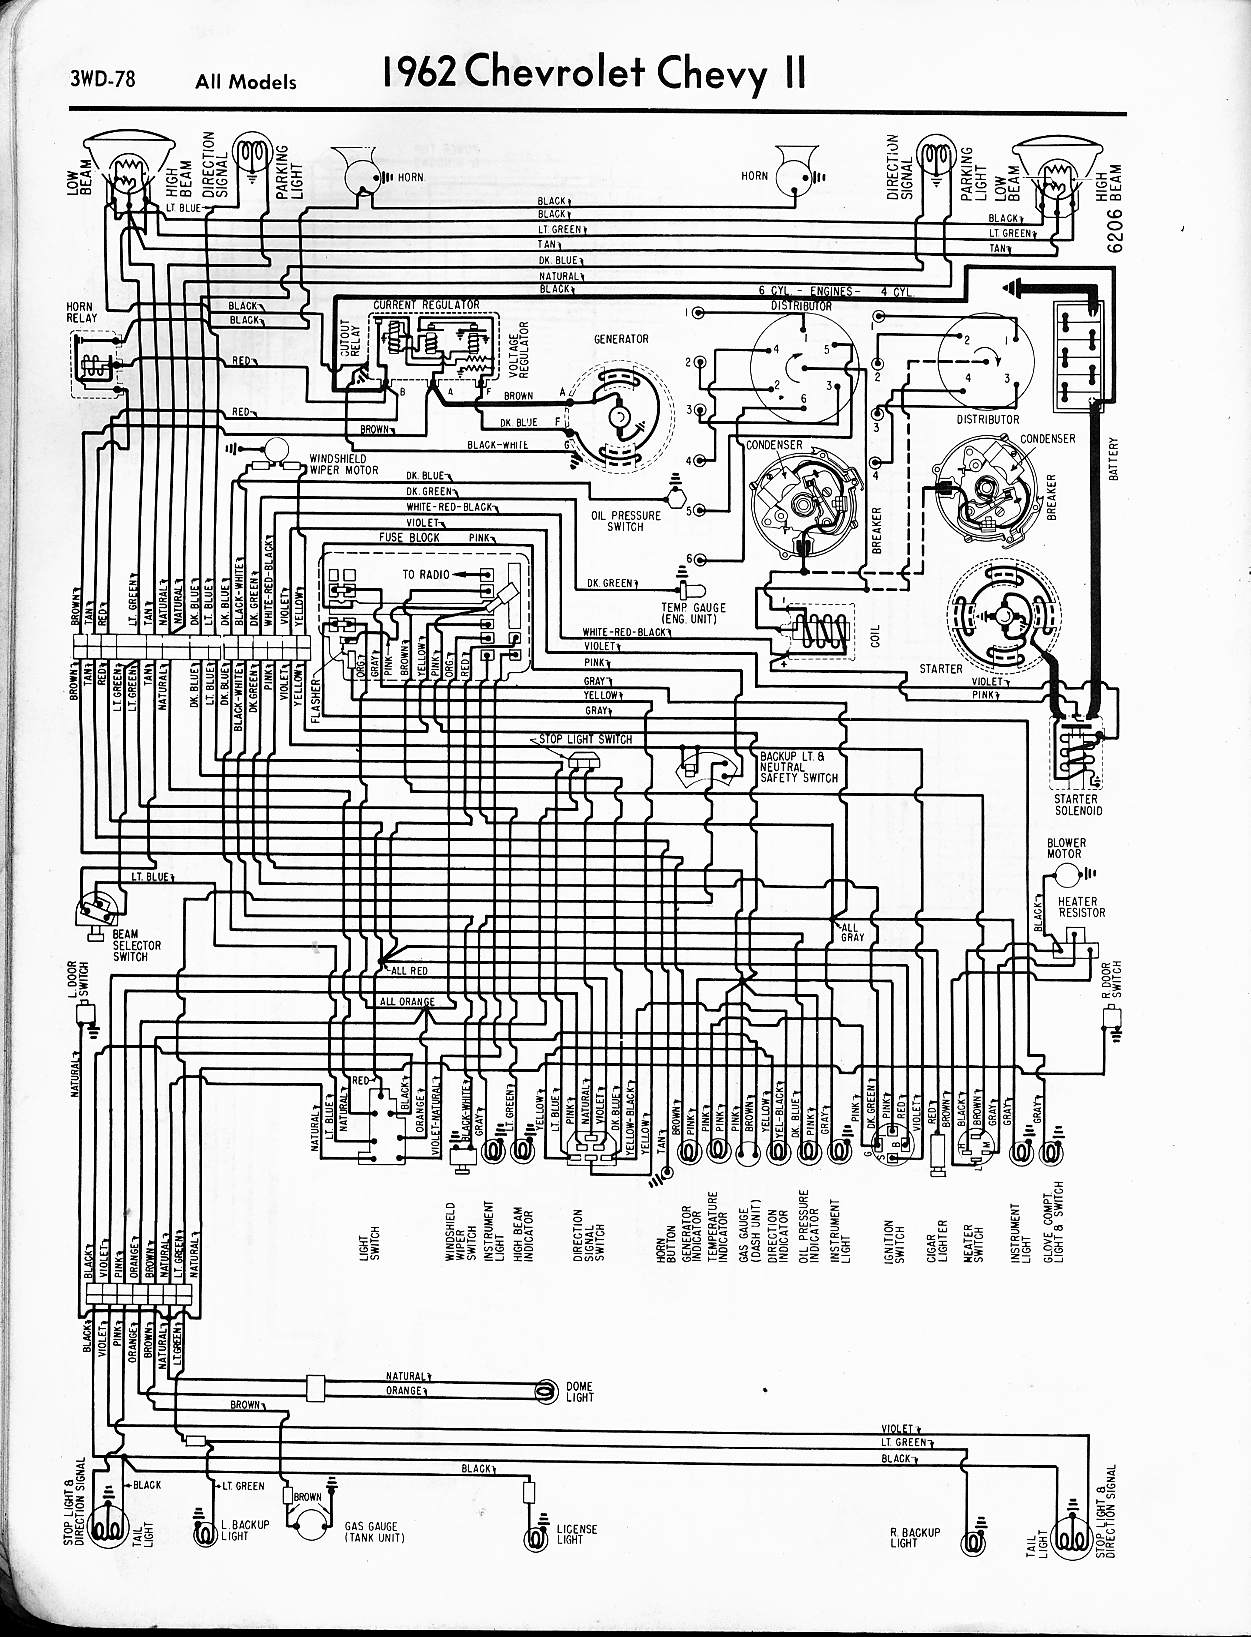 65 bel air wire diagram 1963 bel air wiring diagram | better wiring diagram online